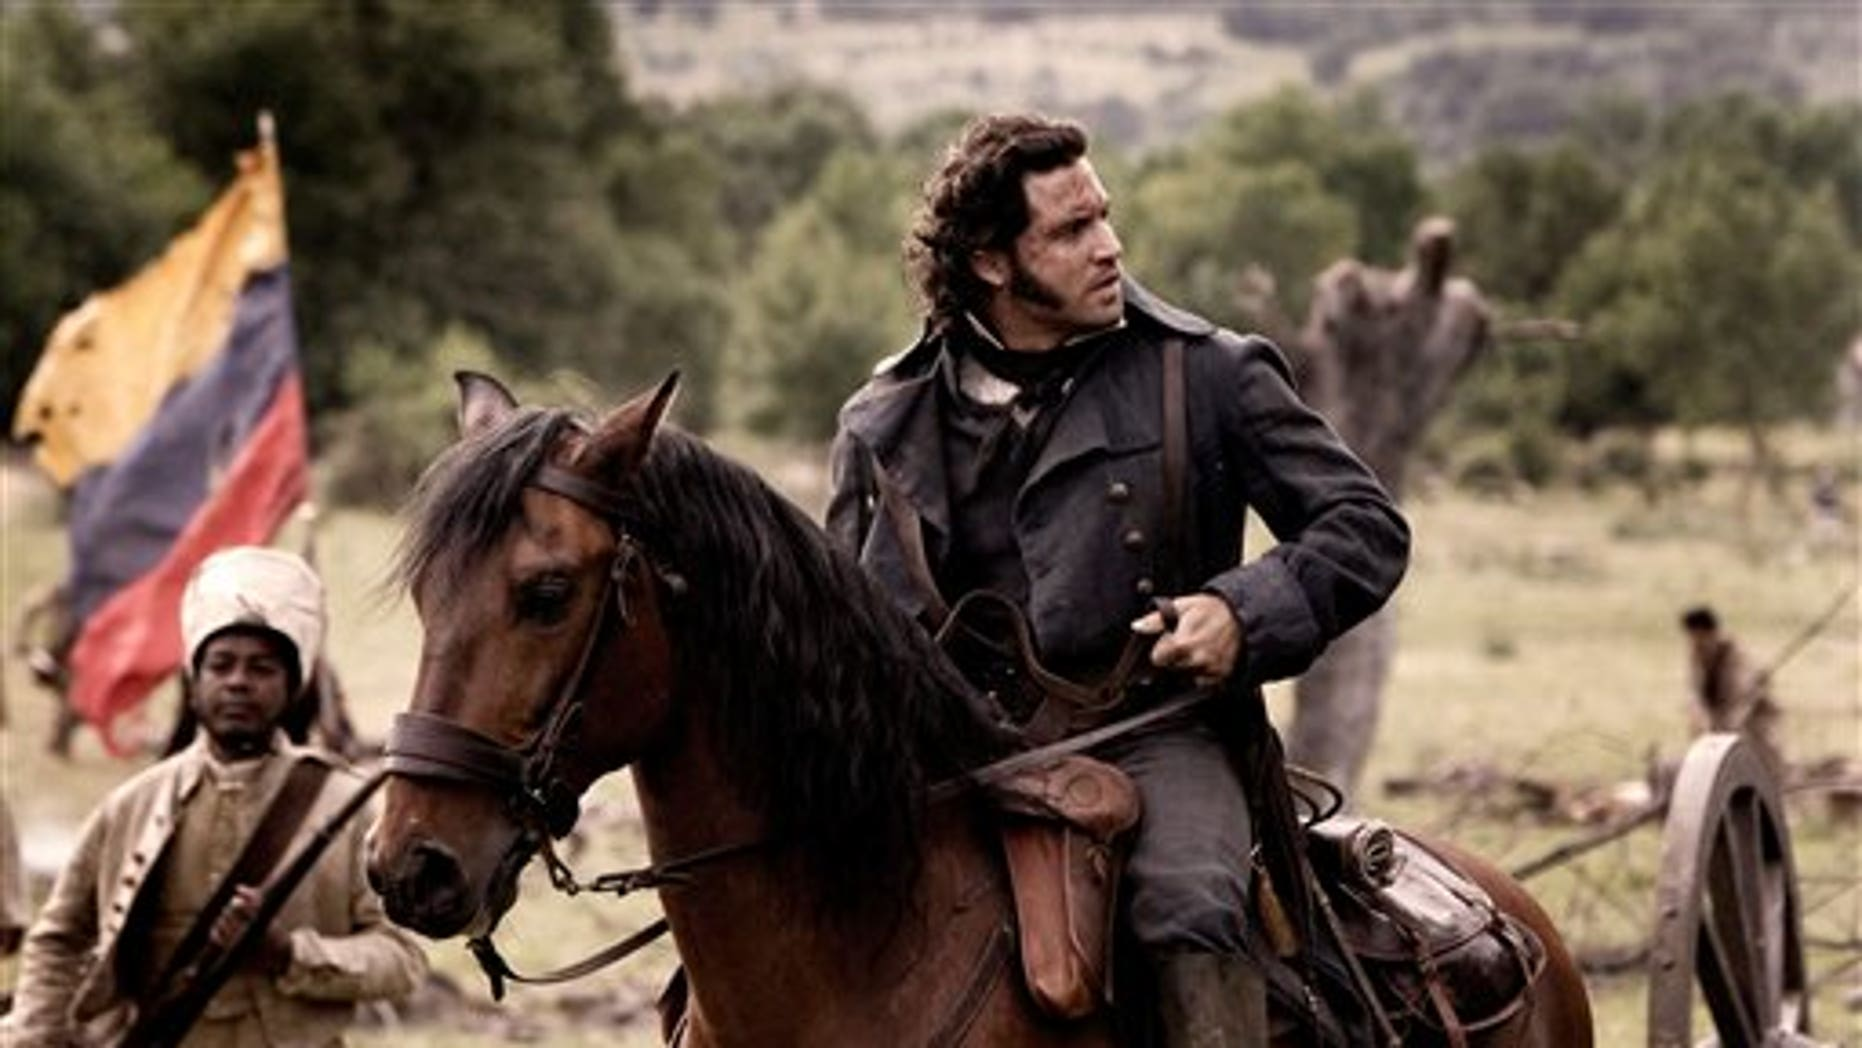 """In this March 2012 file photo released by Producciones Insurgentes Jota Erre Medios, Venezuelan actor Edgar Ramirez is seen during the filming of """"The Liberator, at Rascafria, Spain. Latin Americas greatest hero is finally getting a big-budget, Hollywood-style epic befitting his towering figure. Simon Bolivar, who led the liberation of much of South America from the Spanish in the early 19th century, is the subject of The Liberator, a two-hour epic that is among the costliest movies ever produced in Latin America. (AP Photo/Teresa Isasi)"""